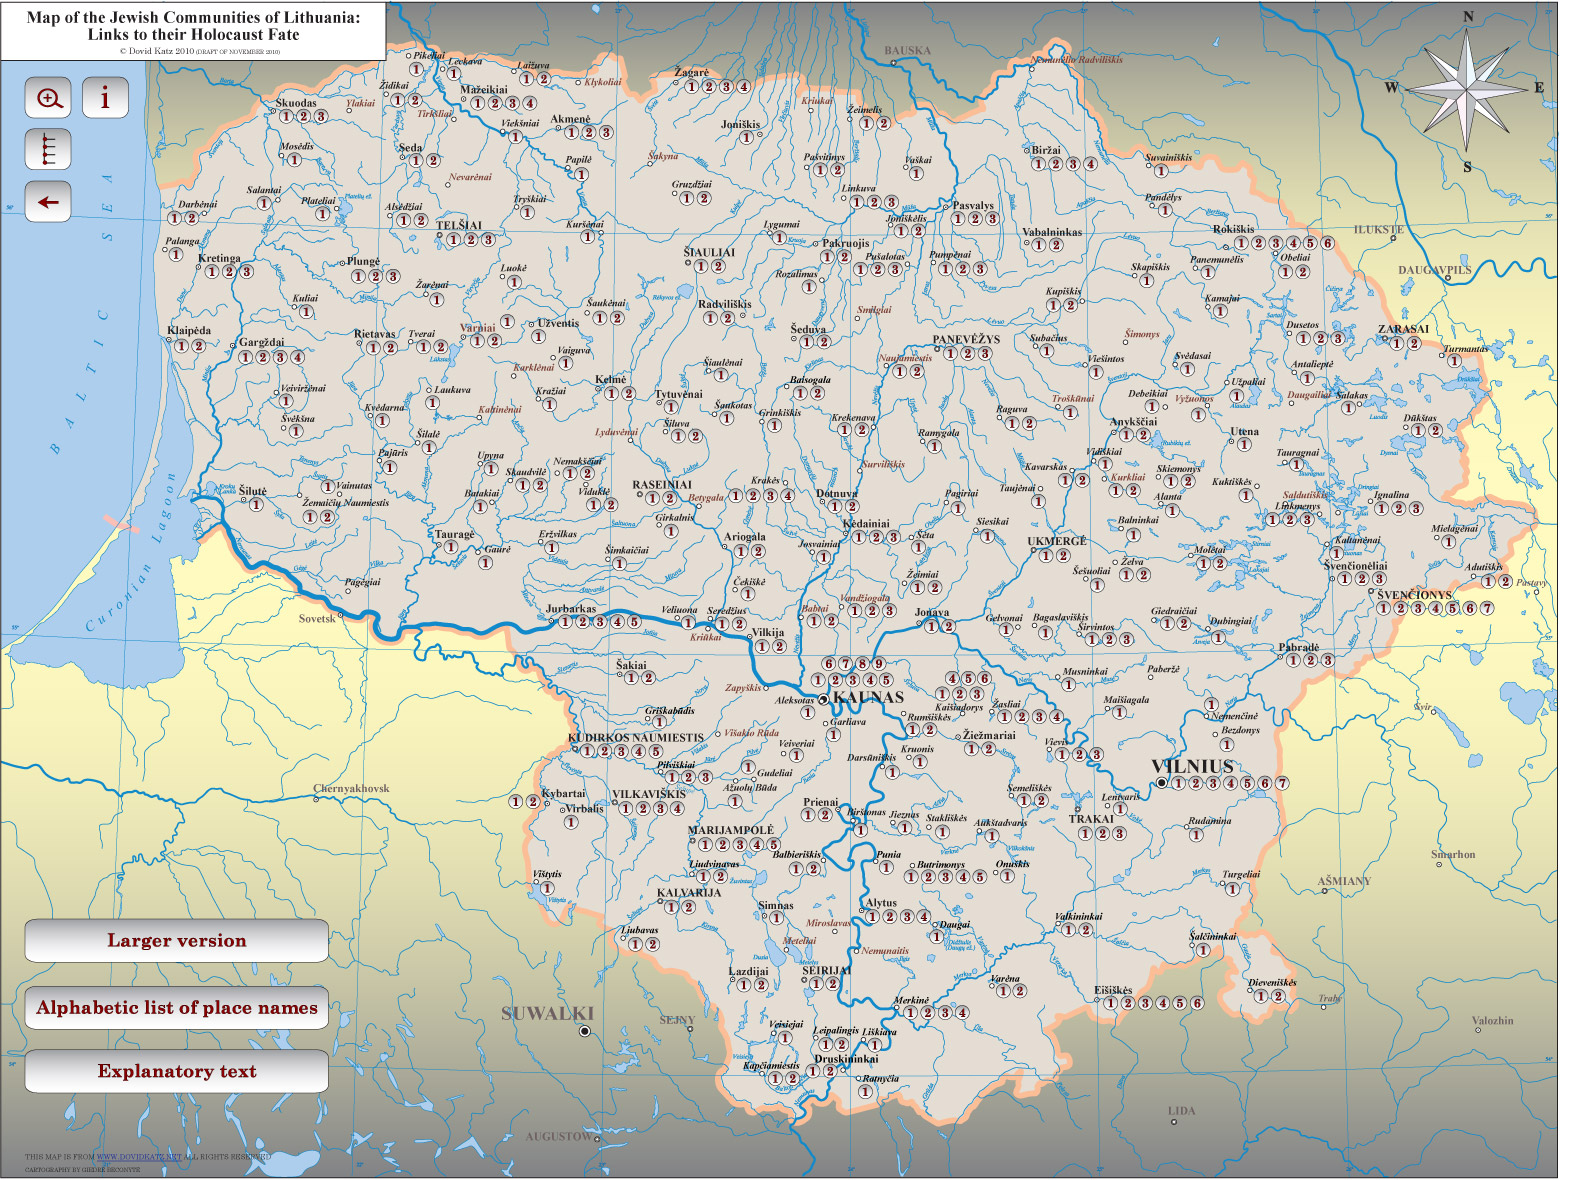 Holocaust Map of Lithuania